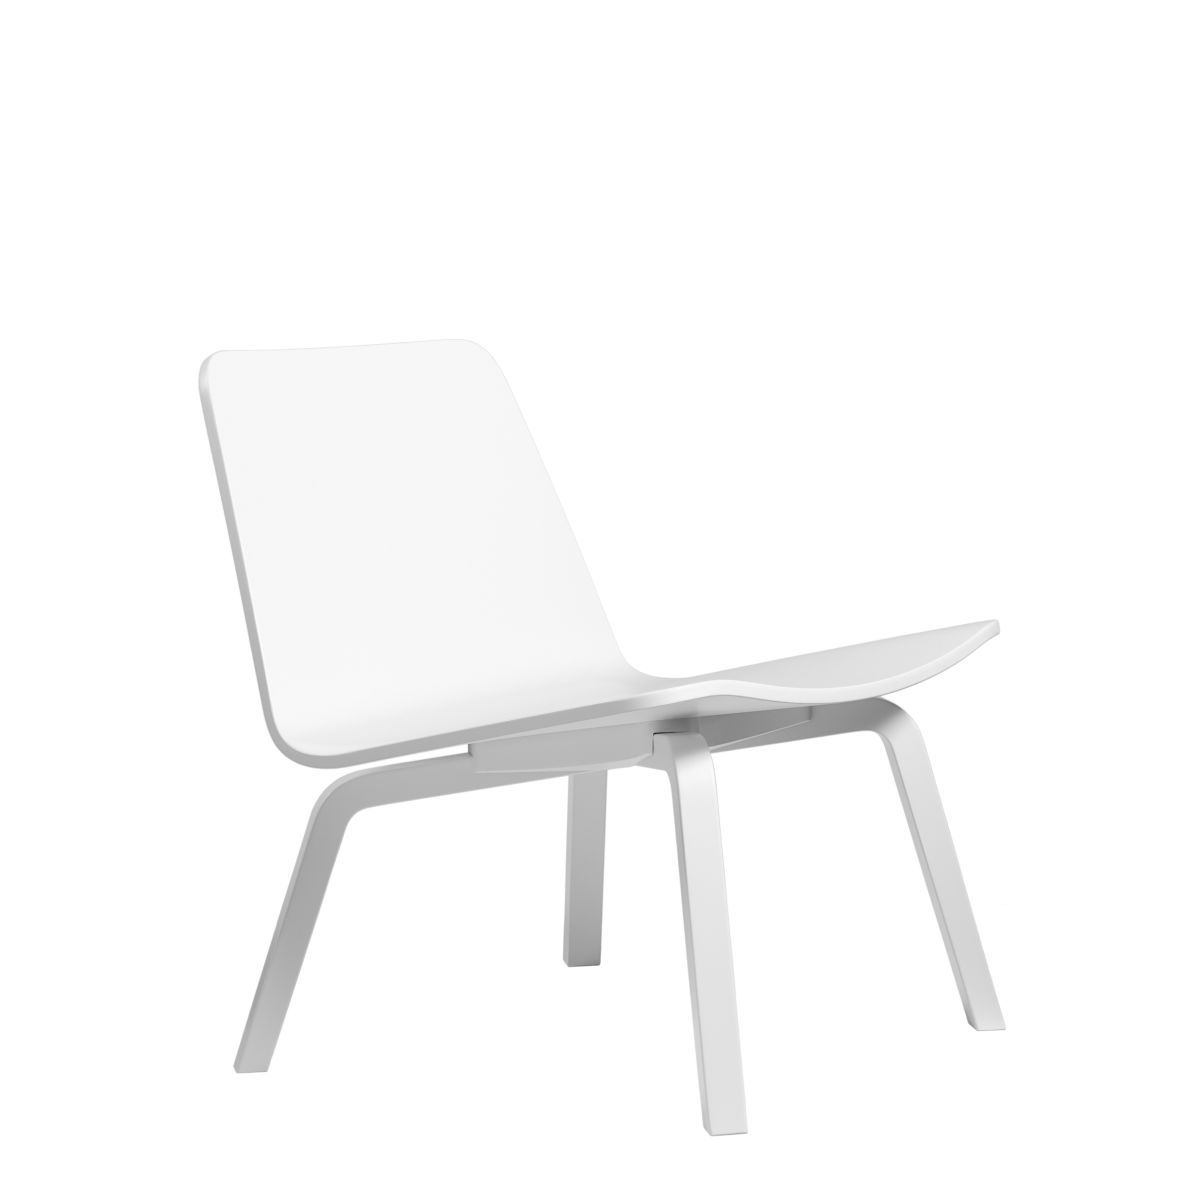 Lounge-Chair-Hk002-White-Lacquer